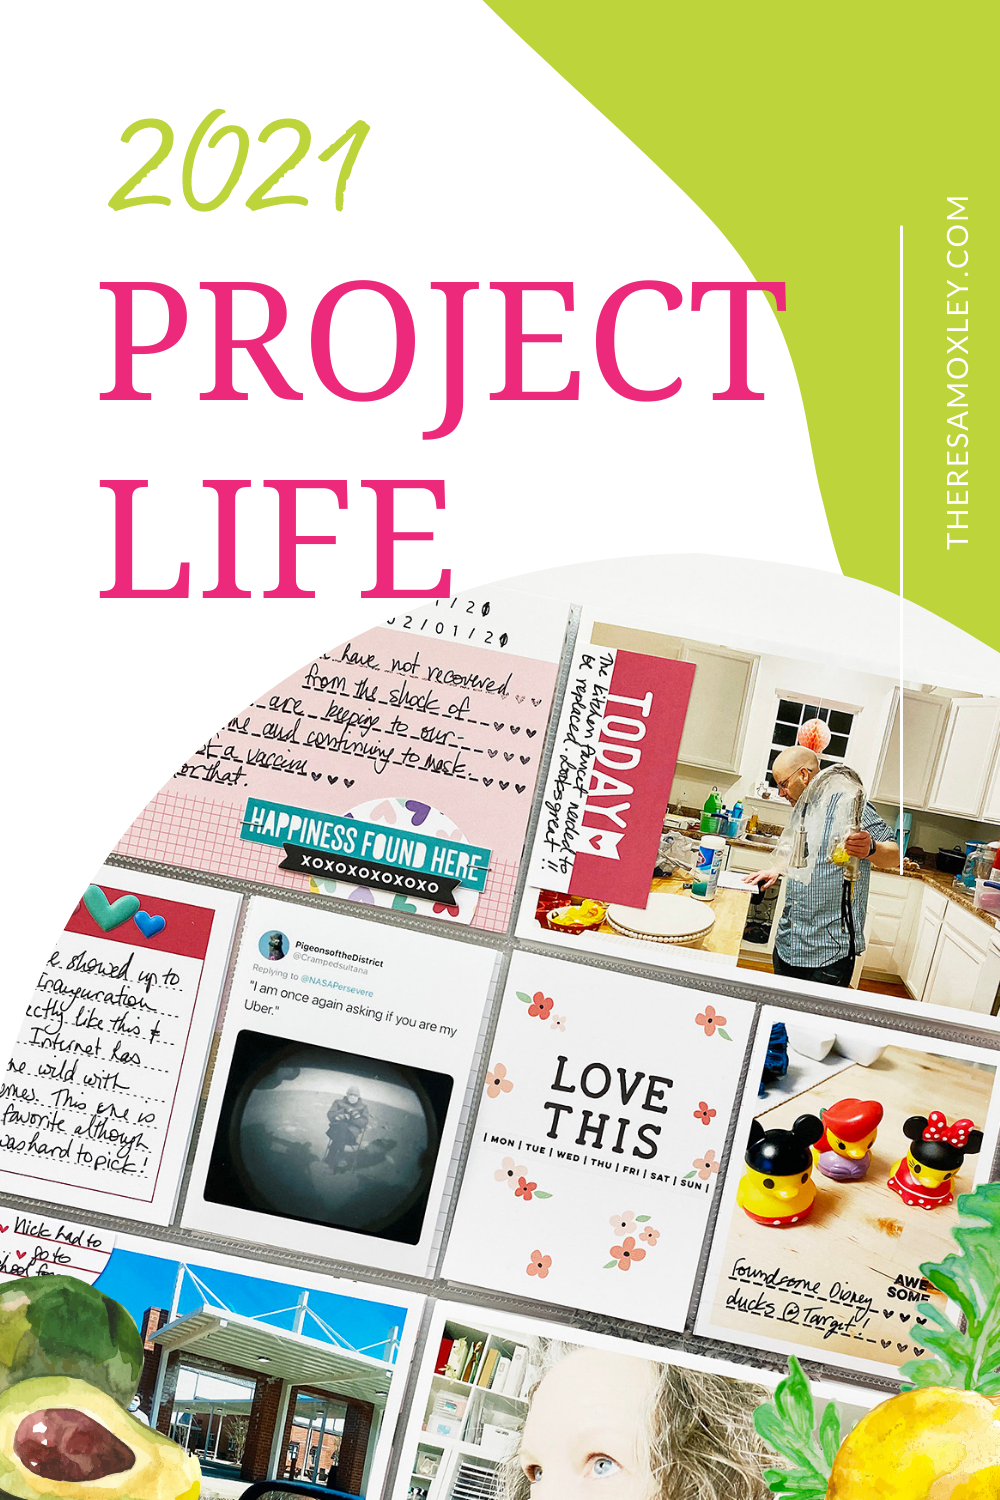 Project Life 2021 February Monthly Layout Ft. Elles Studio